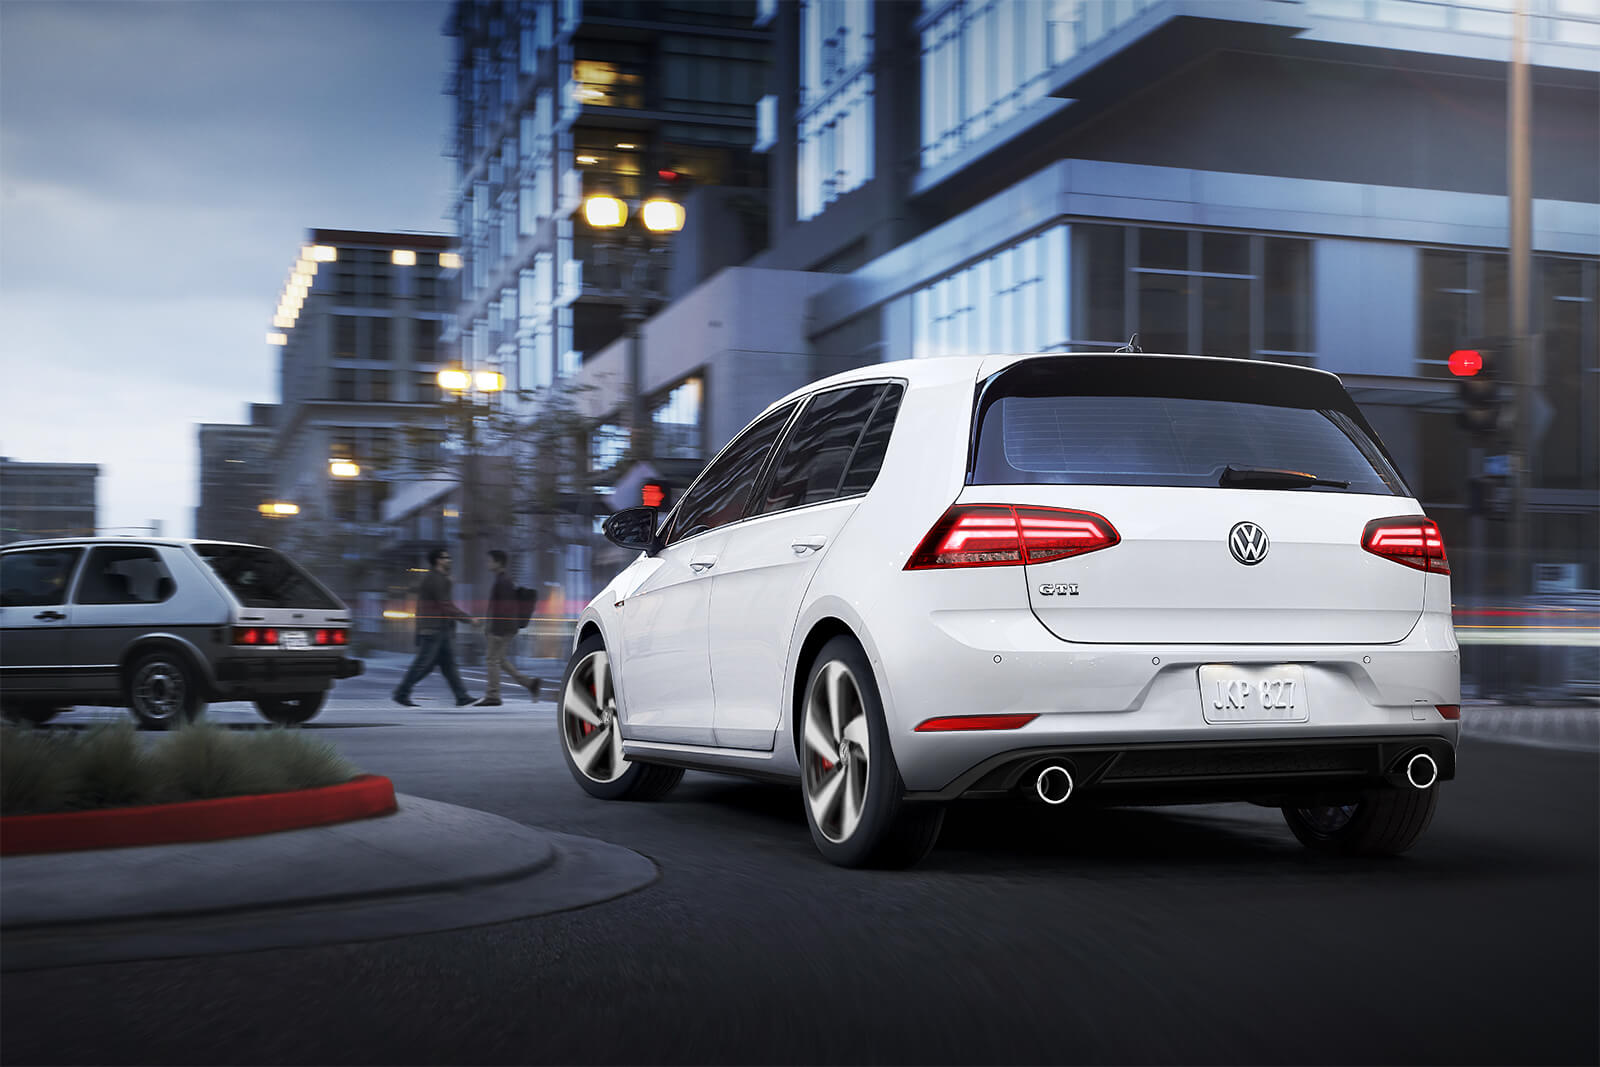 2018 Volkswagen Golf GTI White Rear Exterior